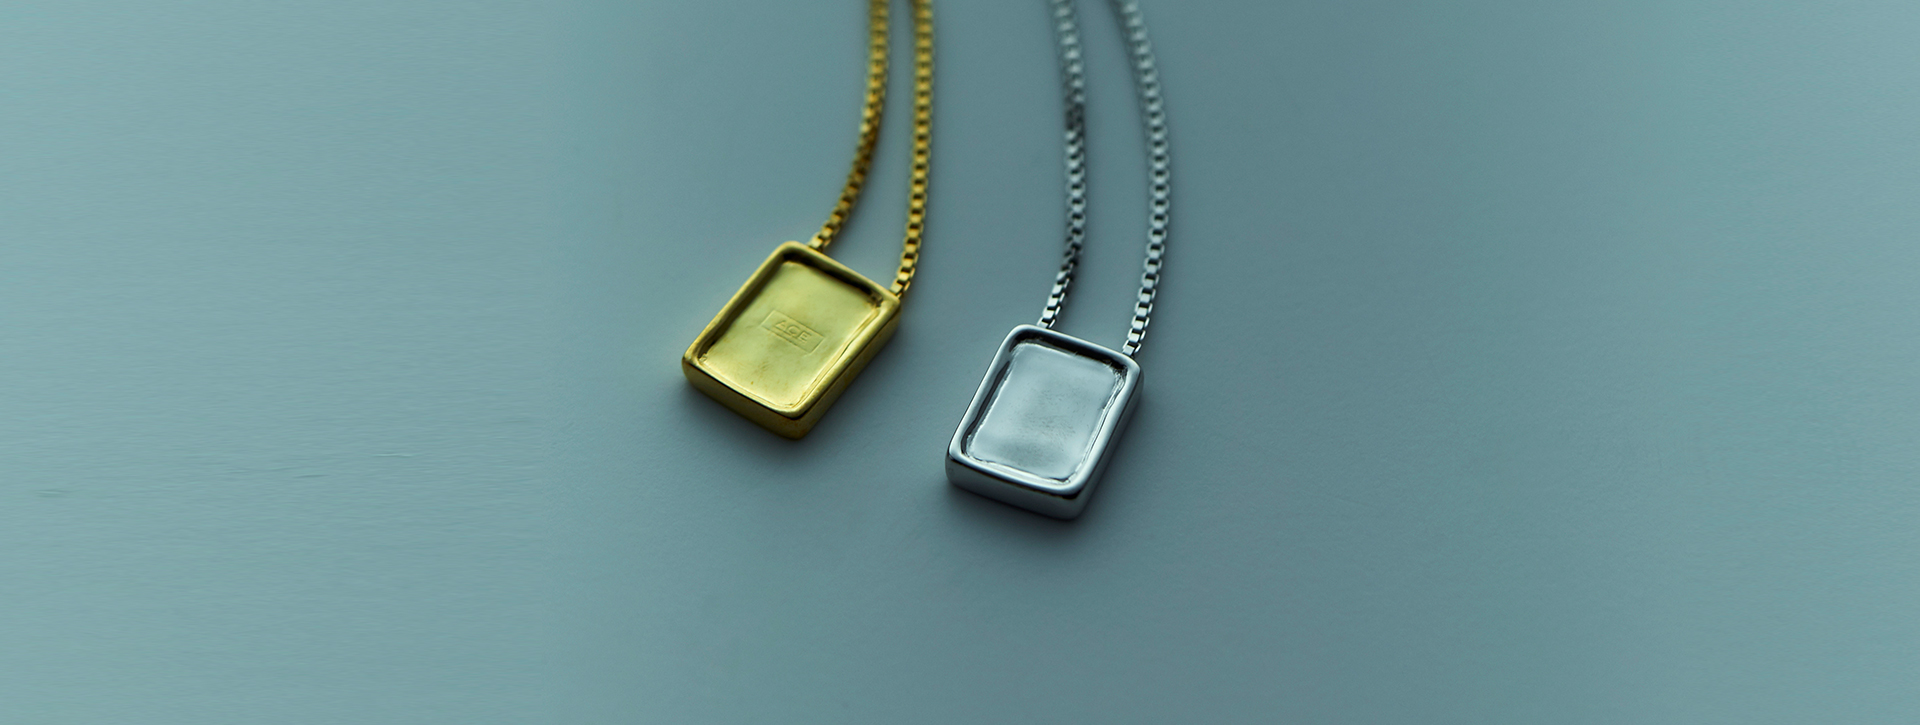 acecapulario necklace M gradation